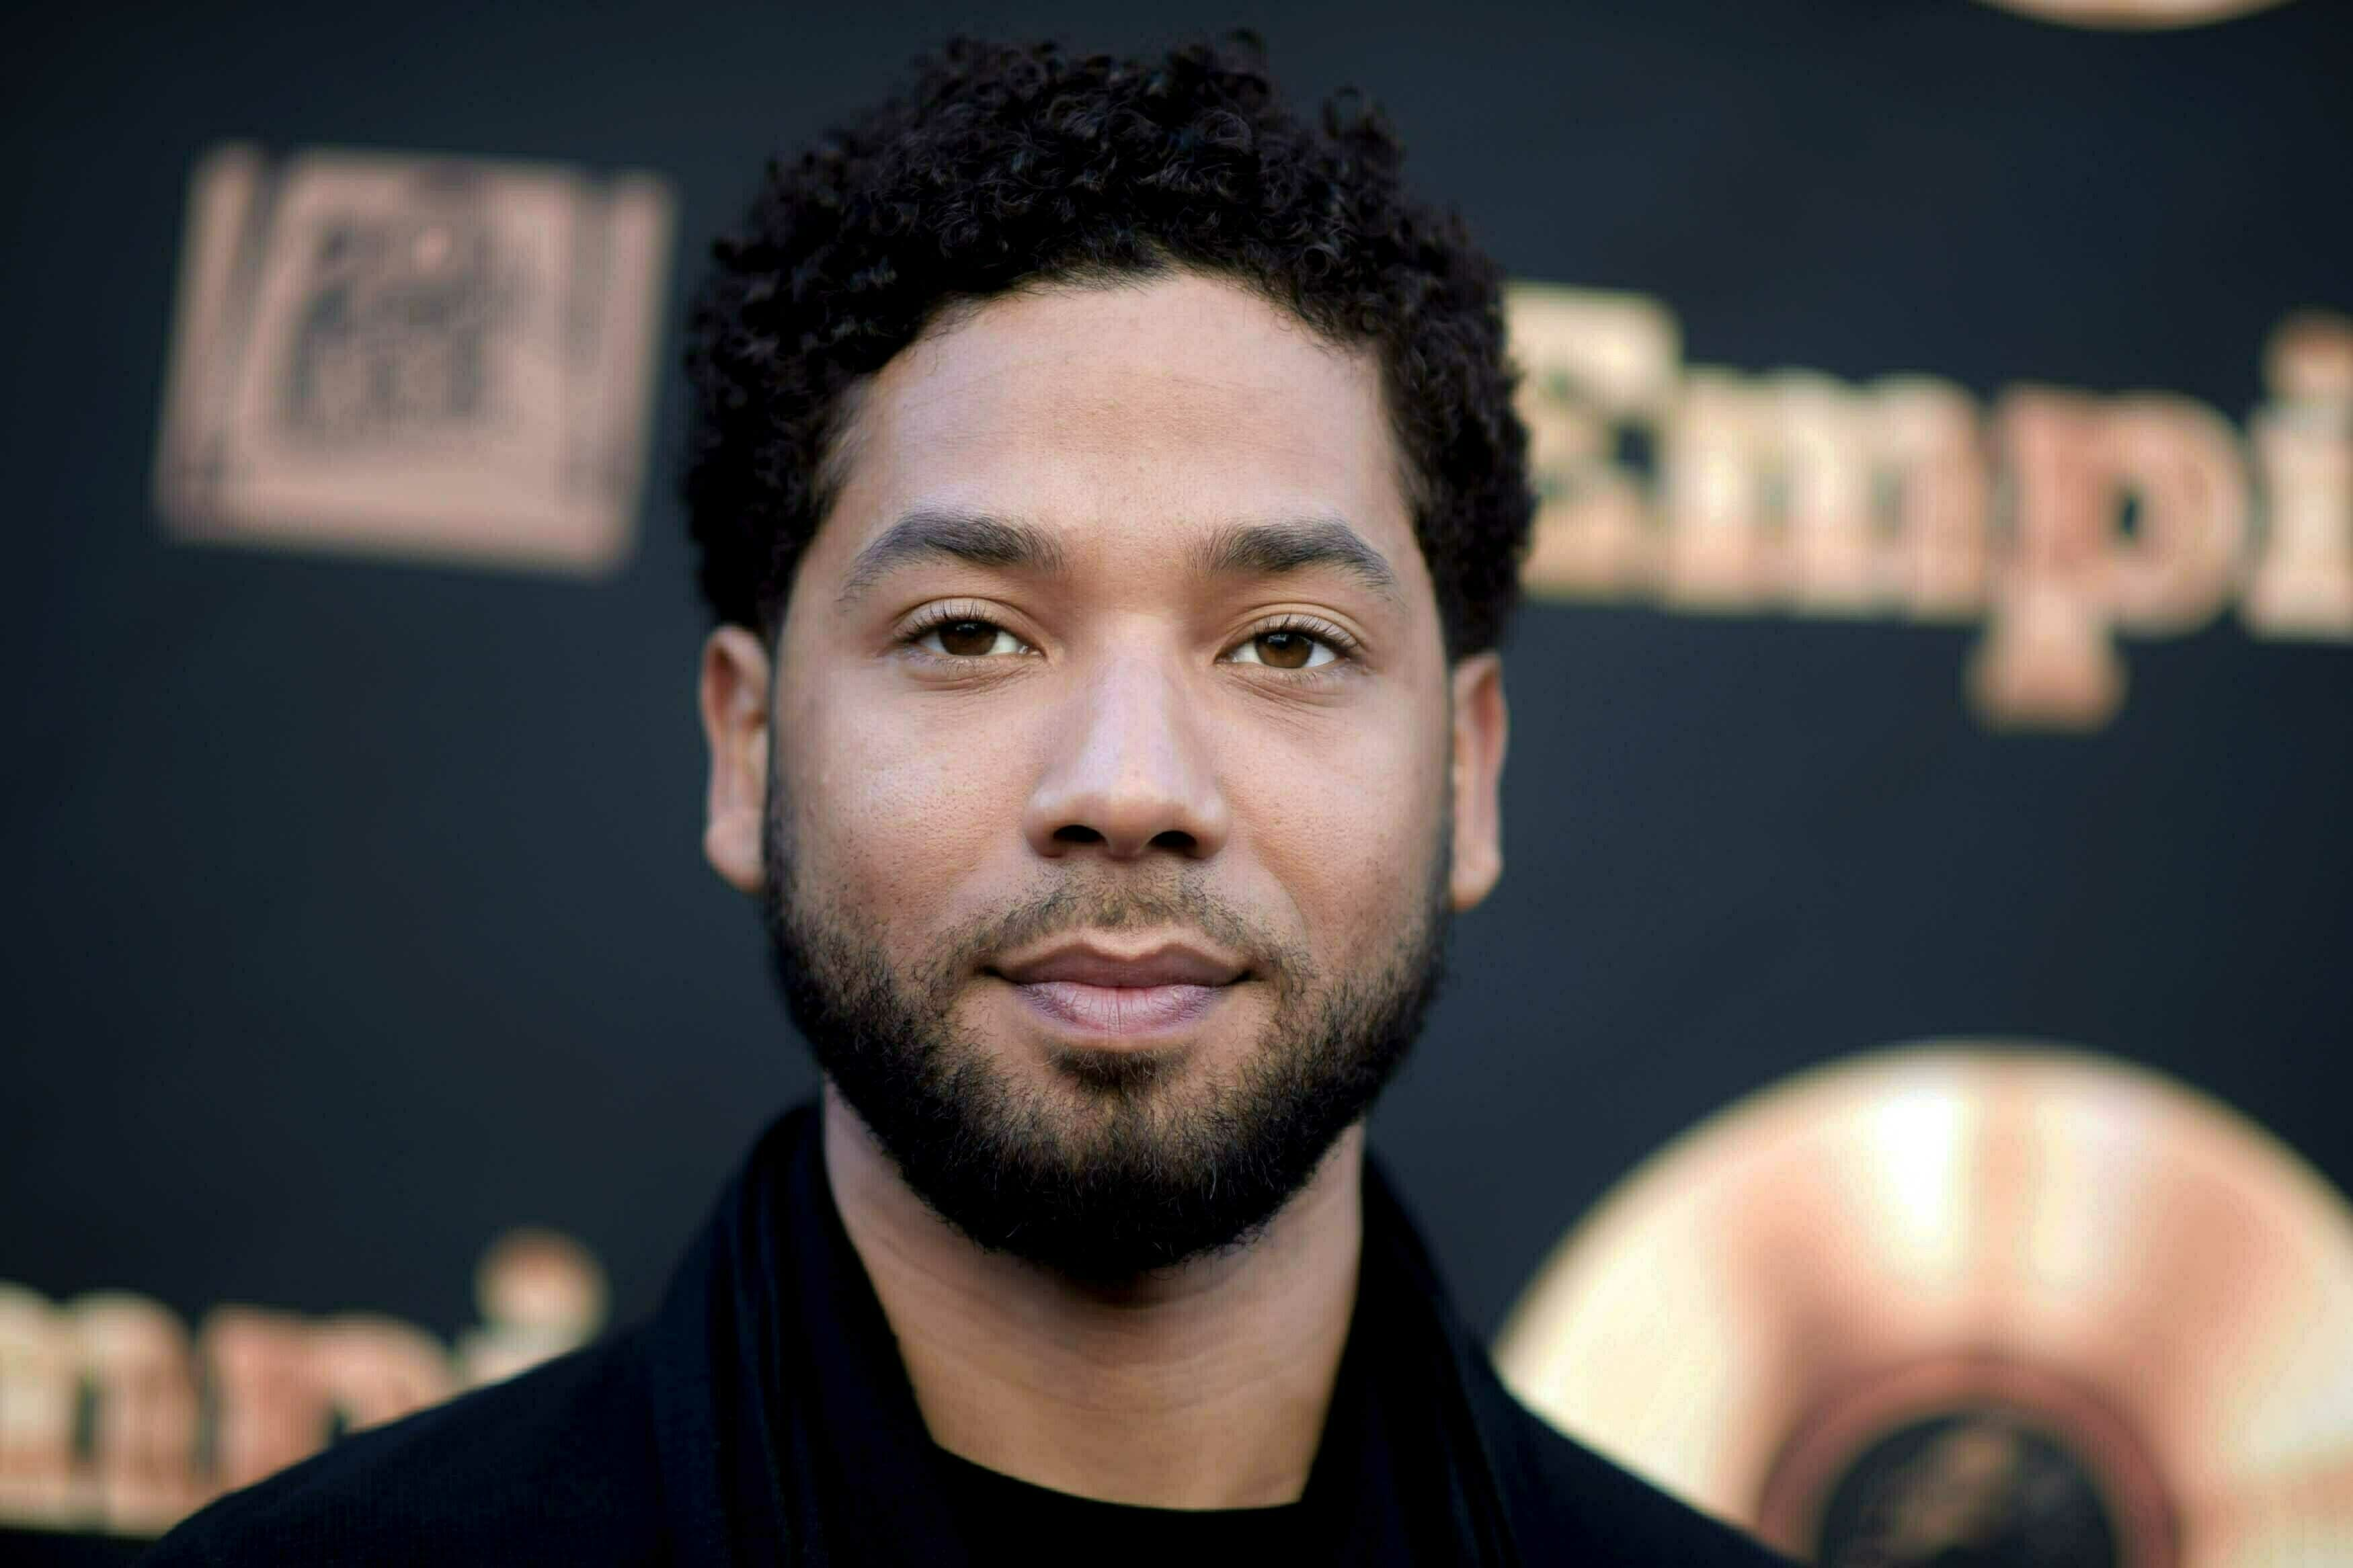 """FILE - In this May 20, 2016 file photo, actor and singer Jussie Smollett attends the """"Empire"""" FYC Event in Los Angeles. A Chicago judge is expected to decide whether to let a former U.S. attorney stay on as special prosecutor examining the dismissal of charges against actor Smollett. The hearing Friday, Oct. 4, 2019, comes after Dan Webb revealed he co-hosted a fundraiser for Kim Foxx during her 2016 run for Chicago's top prosecutor job. Her office in March abruptly dropped charges accusing Smollett of staging a racist, homophobic attack on himself. (Richard Shotwell/Invision/AP, File)"""